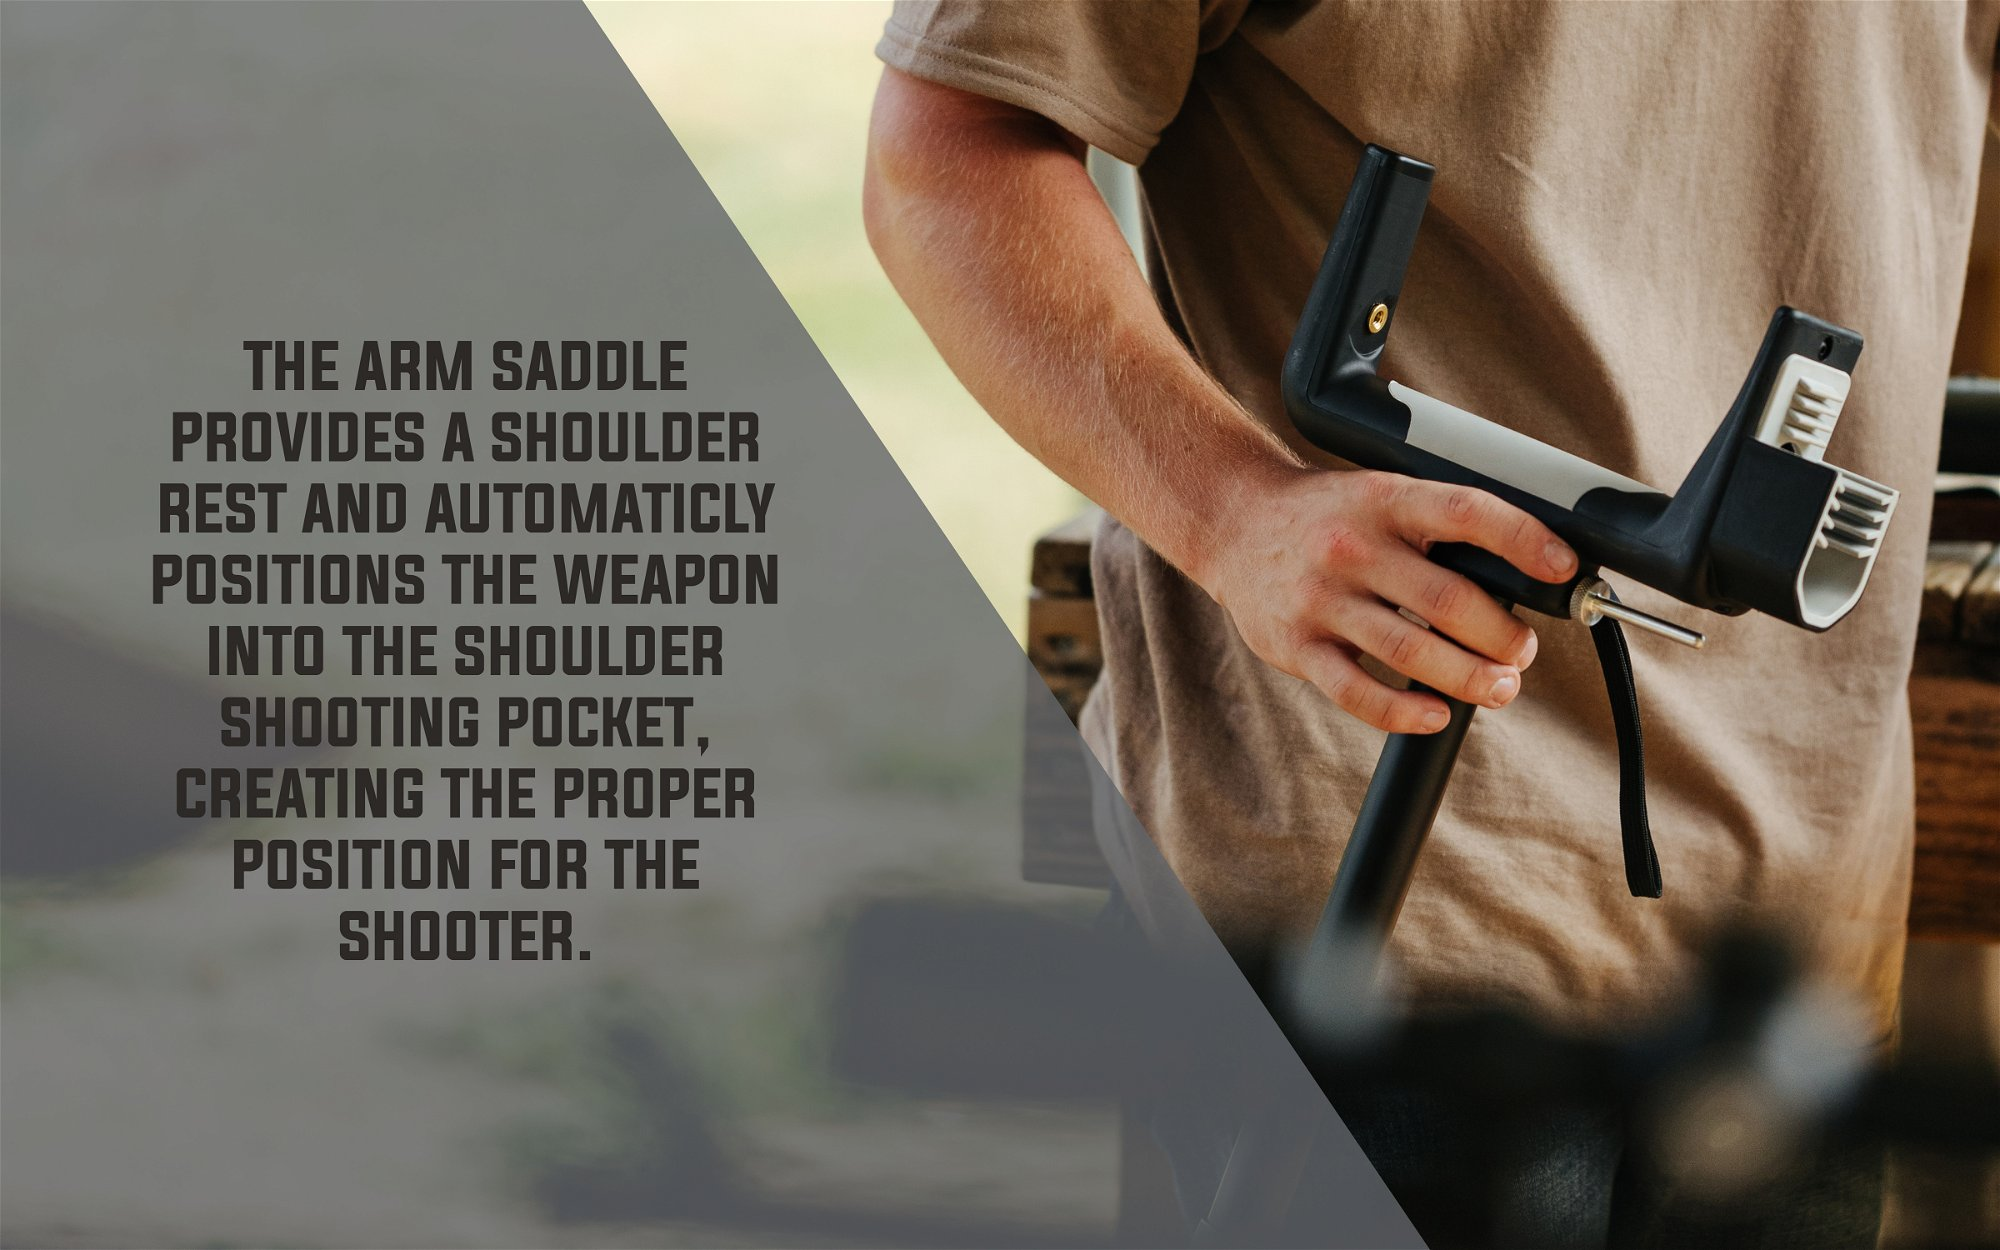 The arm saddle provides a shoulder rest and automatically positions the weapon into the shoulder shooting pocket, creating the proper position for the shooter.